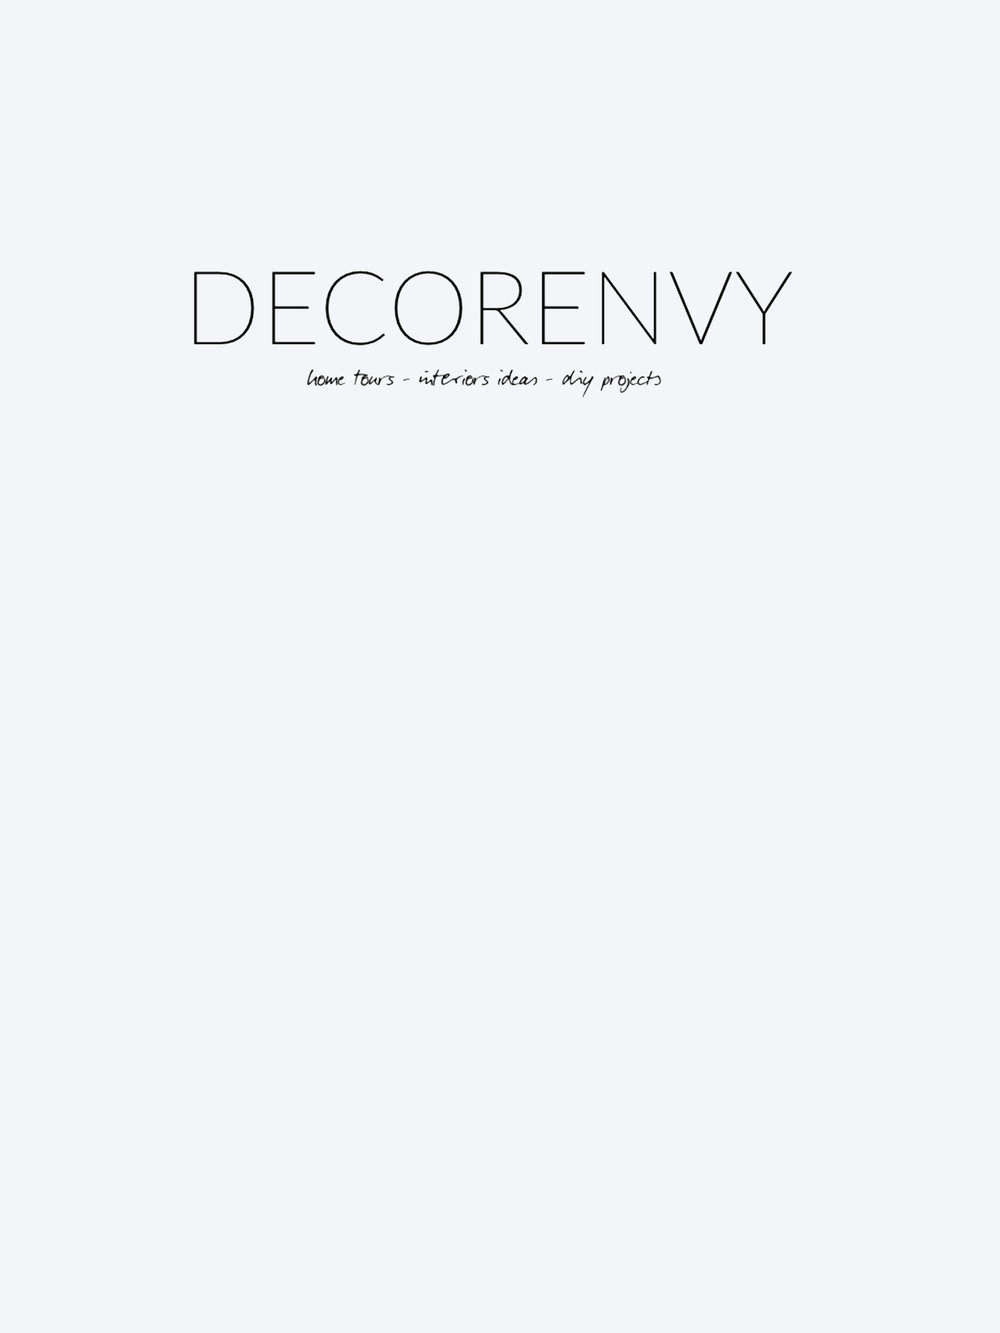 Decorenvy – May 16